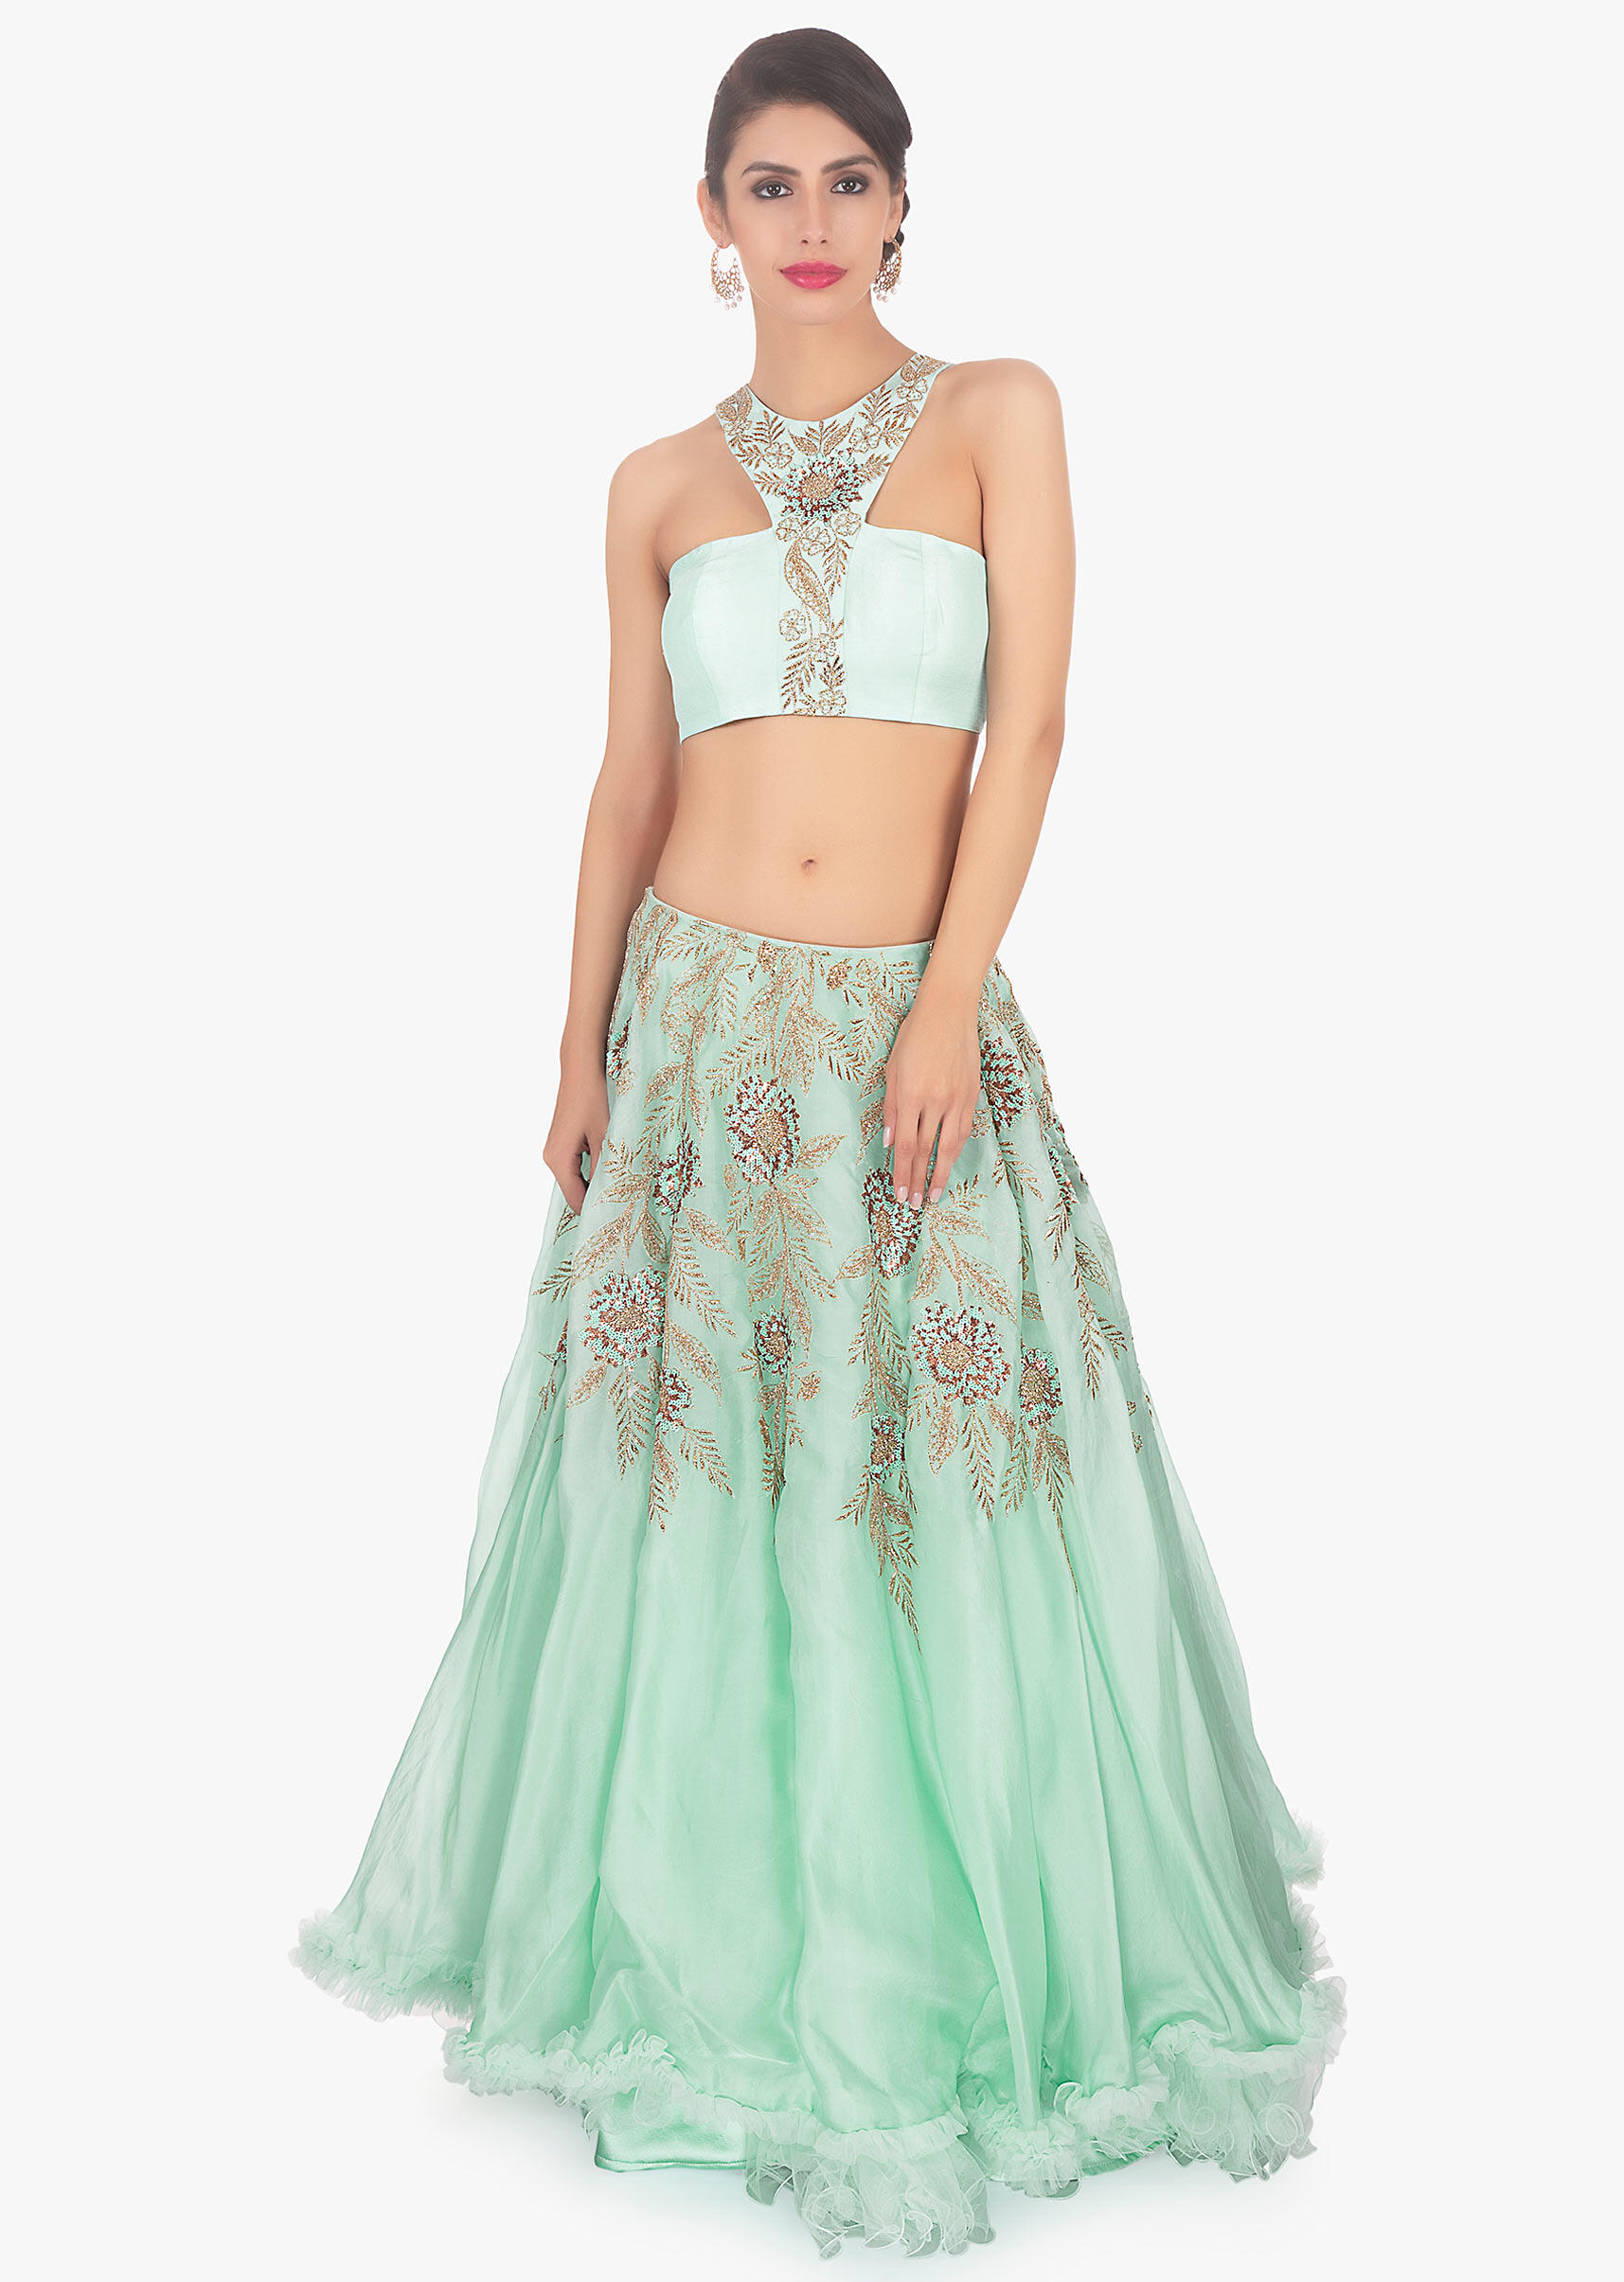 Pistachio green halter neck crepe blouse paired matching organza lehenga  only on Kalki 79c638430